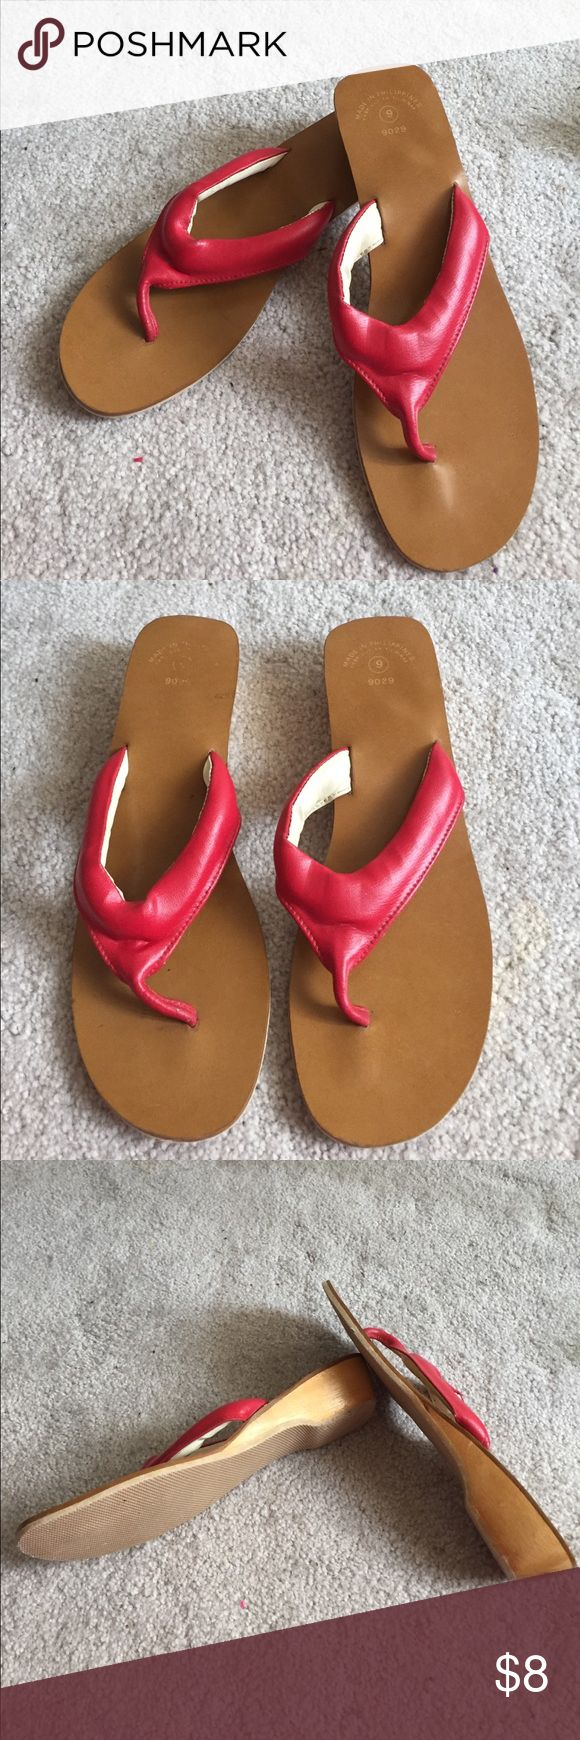 "Red Leather with Wood Wedge Flip Flop Barely worn Red Lesther on wood 3/4"" wedge ""Flip Flop""!  Great for summer! Shoes Sandals"